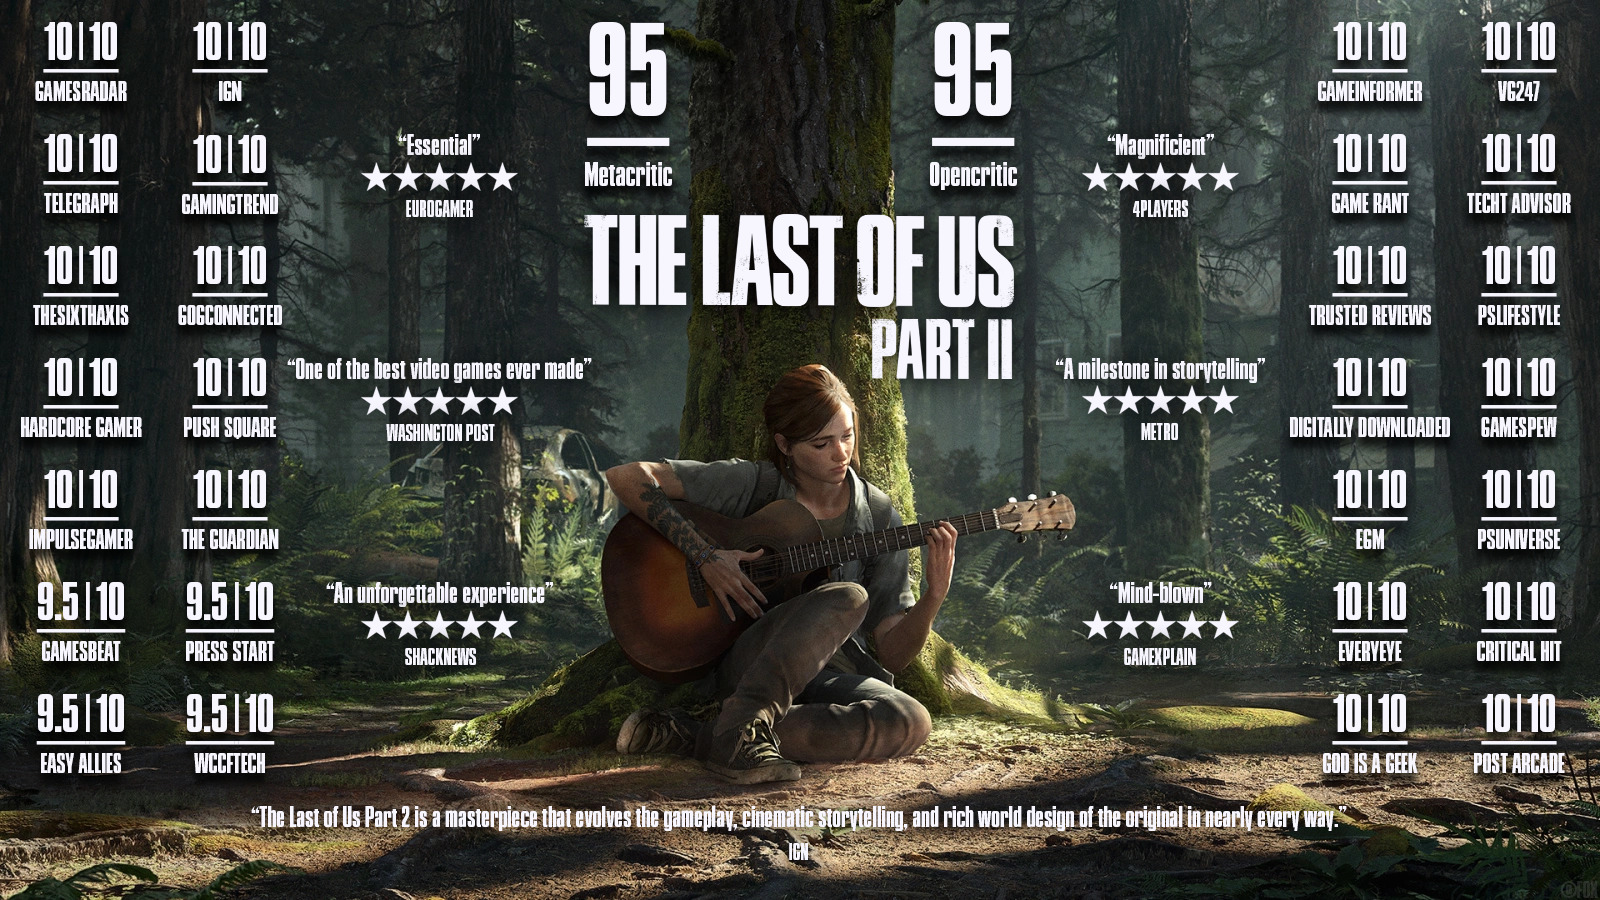 The Last of Us Part II jadi Game of the Year 2020